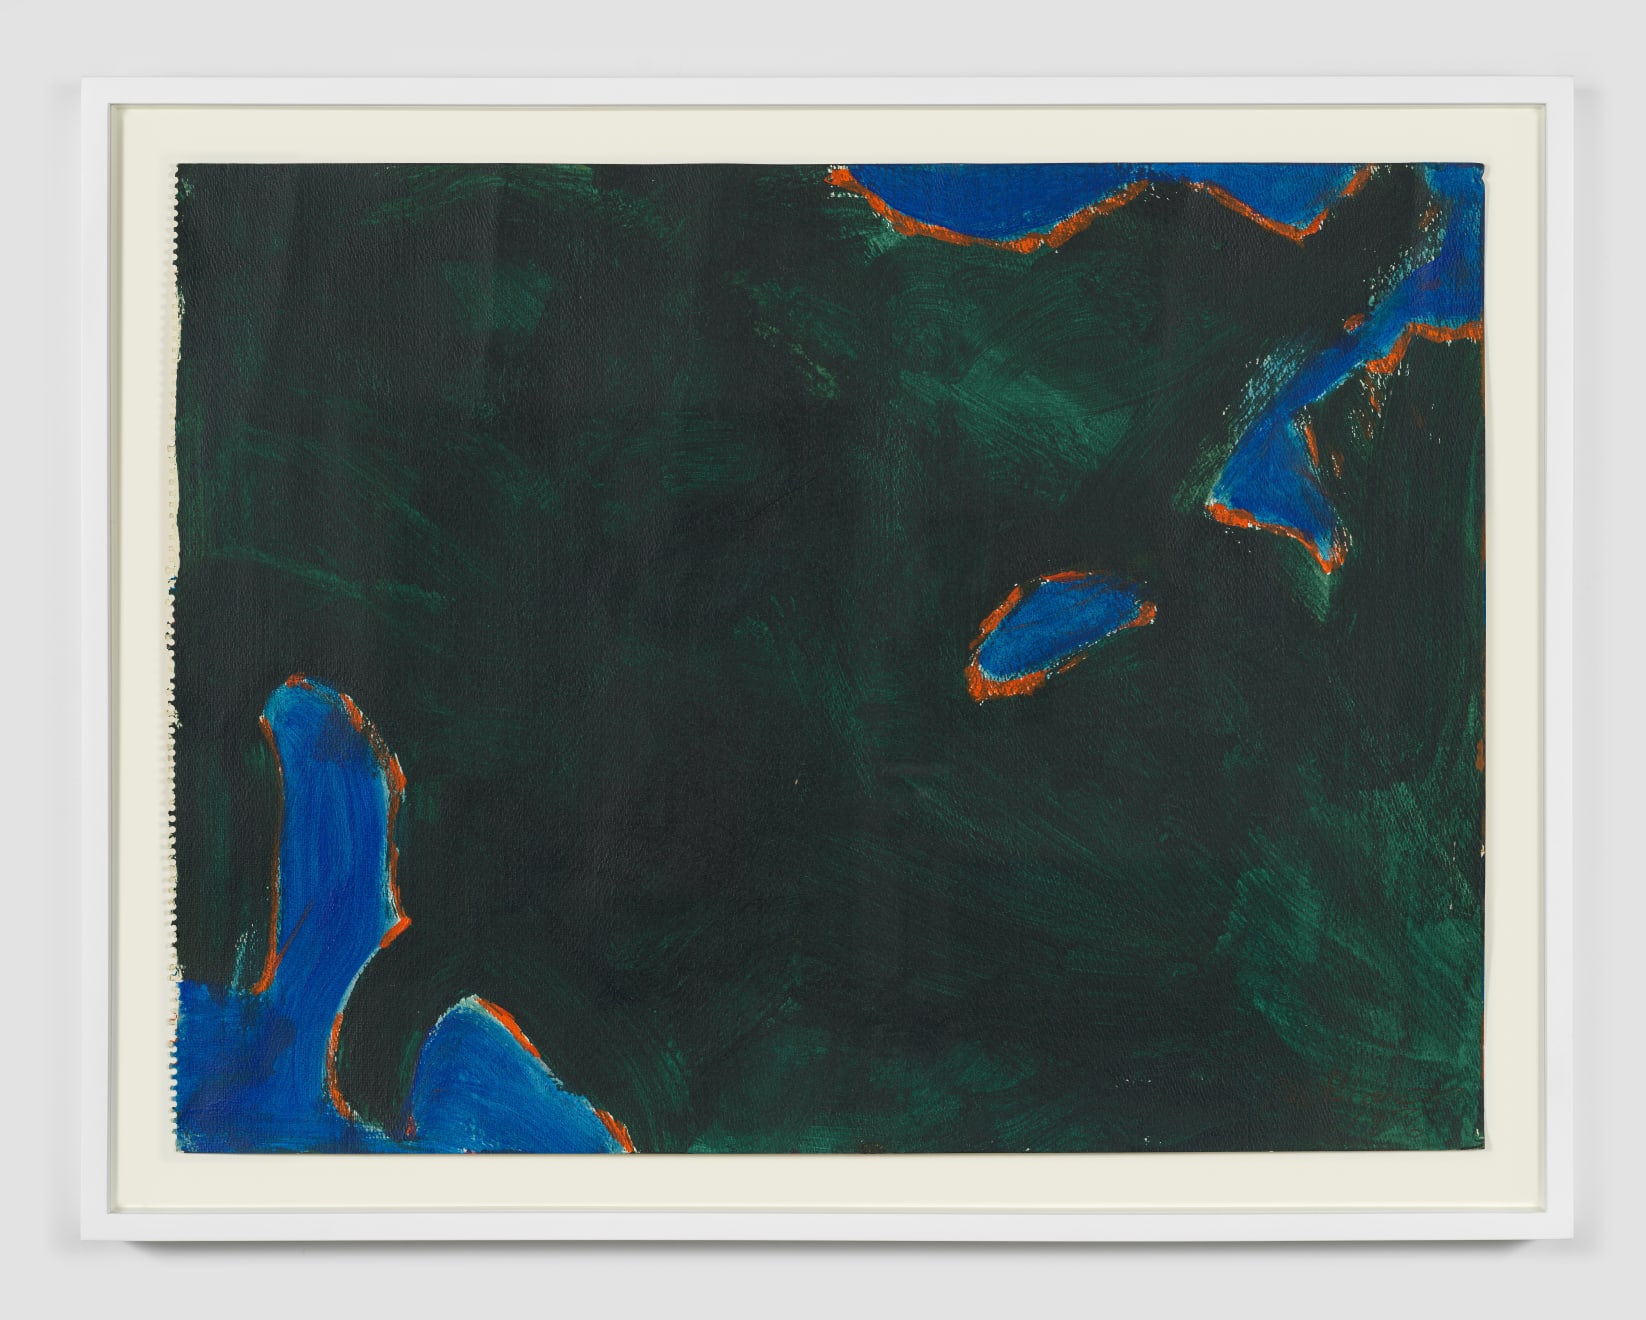 Betty Parsons Untitled, 1976 Acrylic on paper 23.75h x 18w in (60.33h x 45.72w cm)